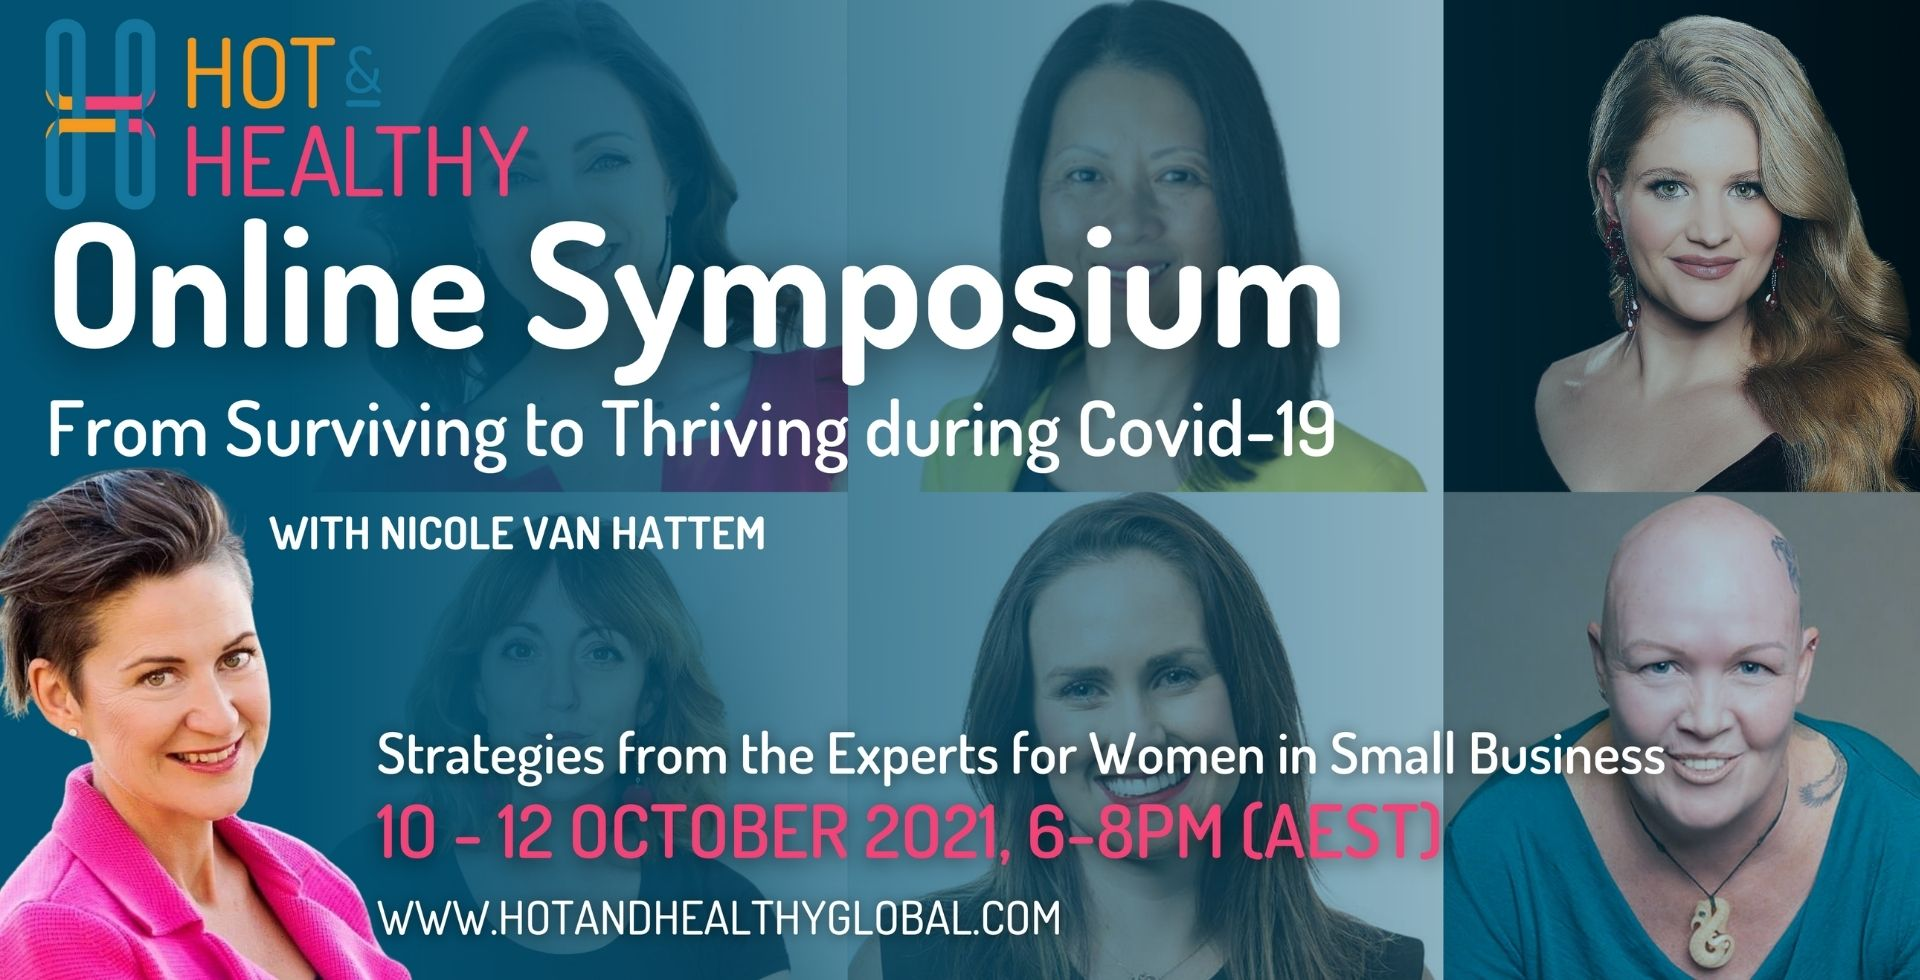 hot and healthy free trial - online symposiumhot and healthy free trial - online symposium